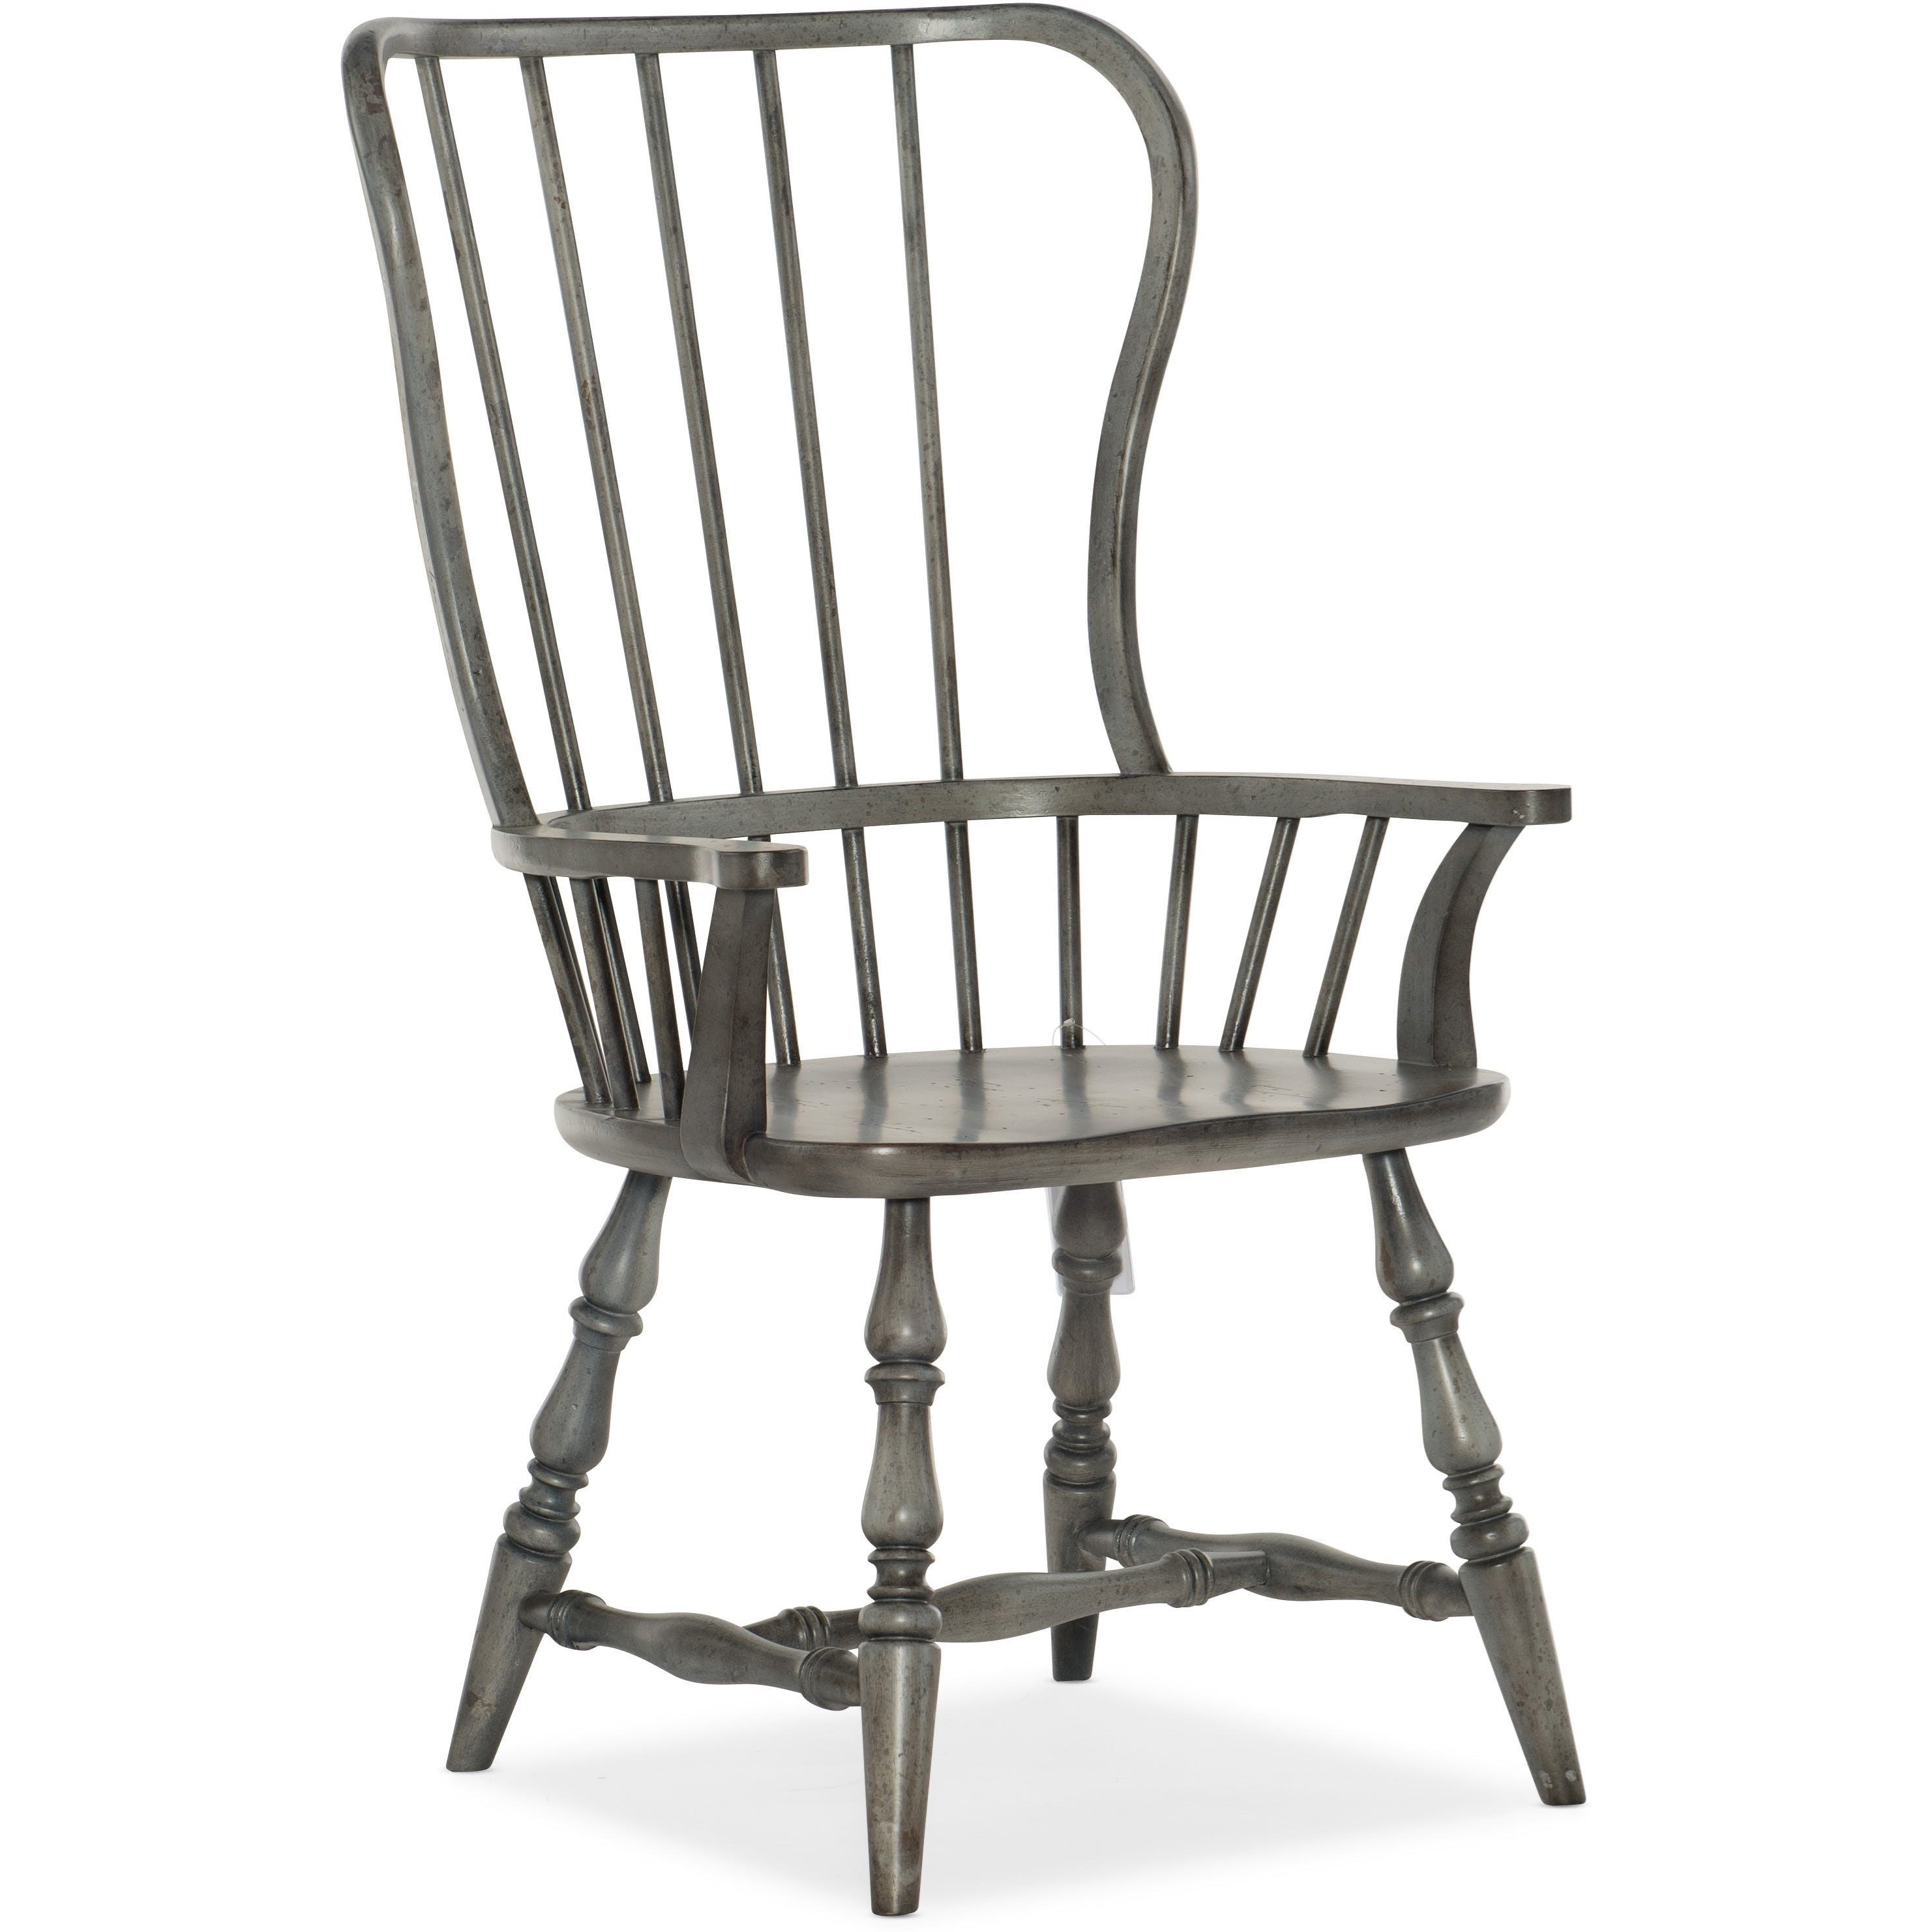 Ciao Bella Spindle Back Arm Chair by Hooker Furniture at Miller Waldrop Furniture and Decor